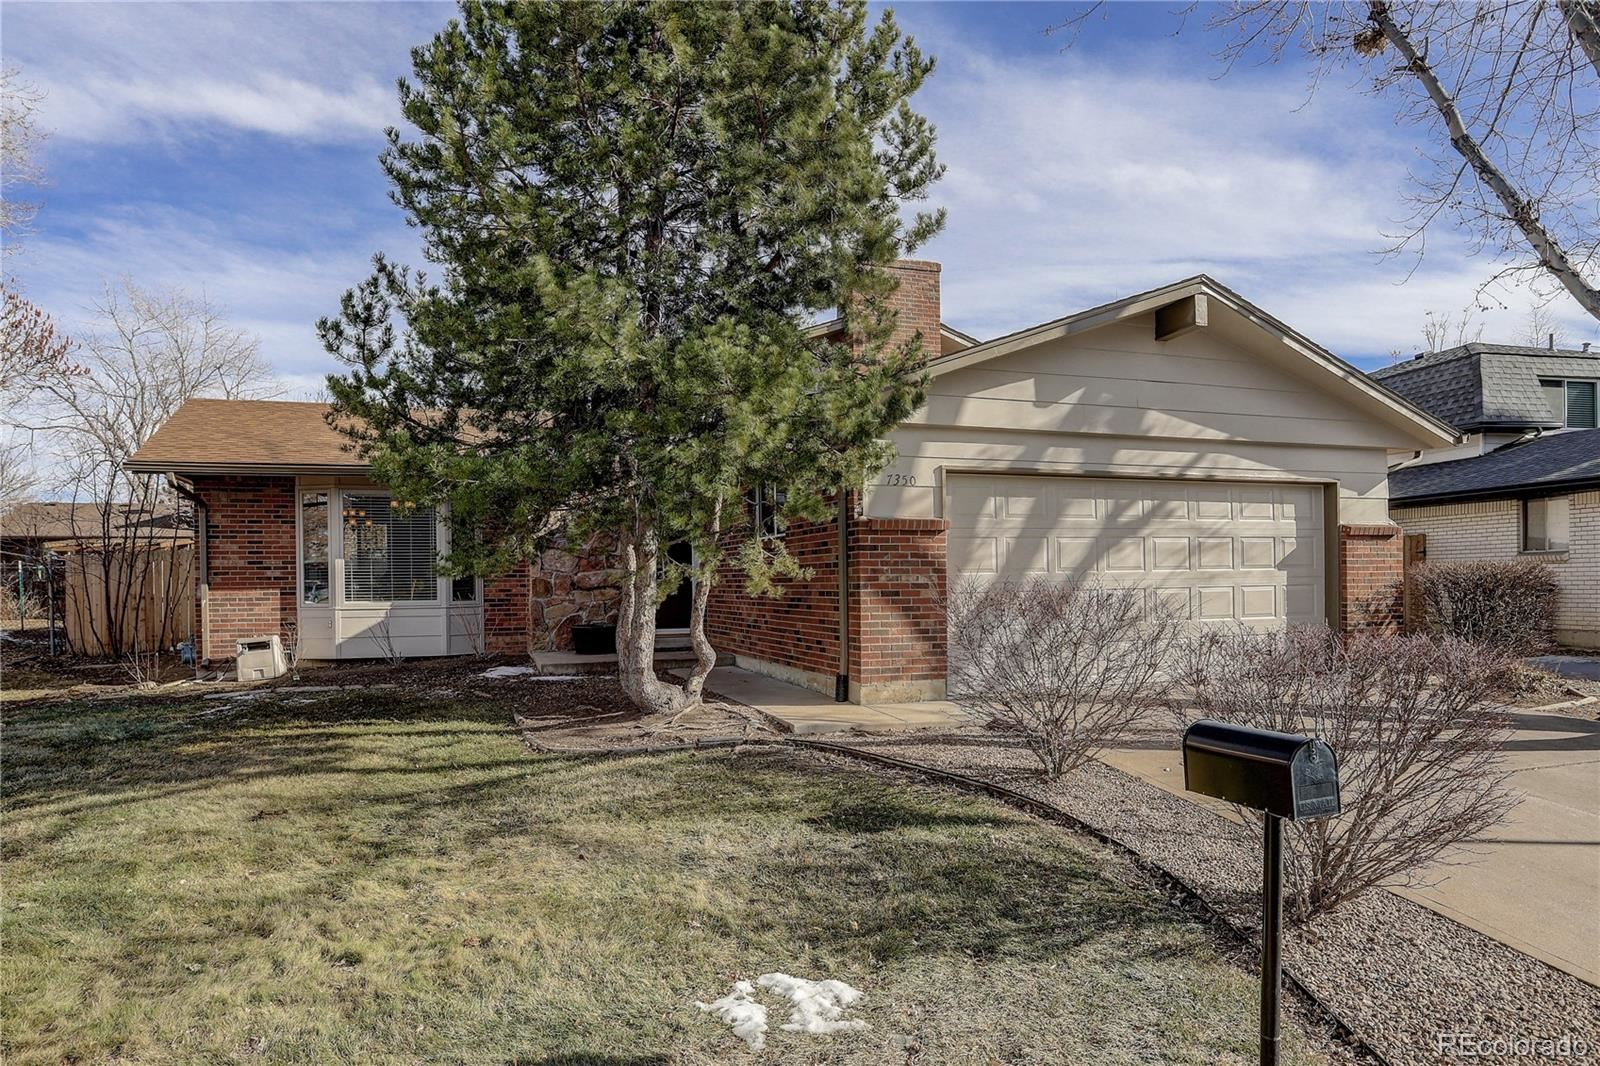 7350 S Eudora Court, Centennial, CO 80122 - #: 4161795